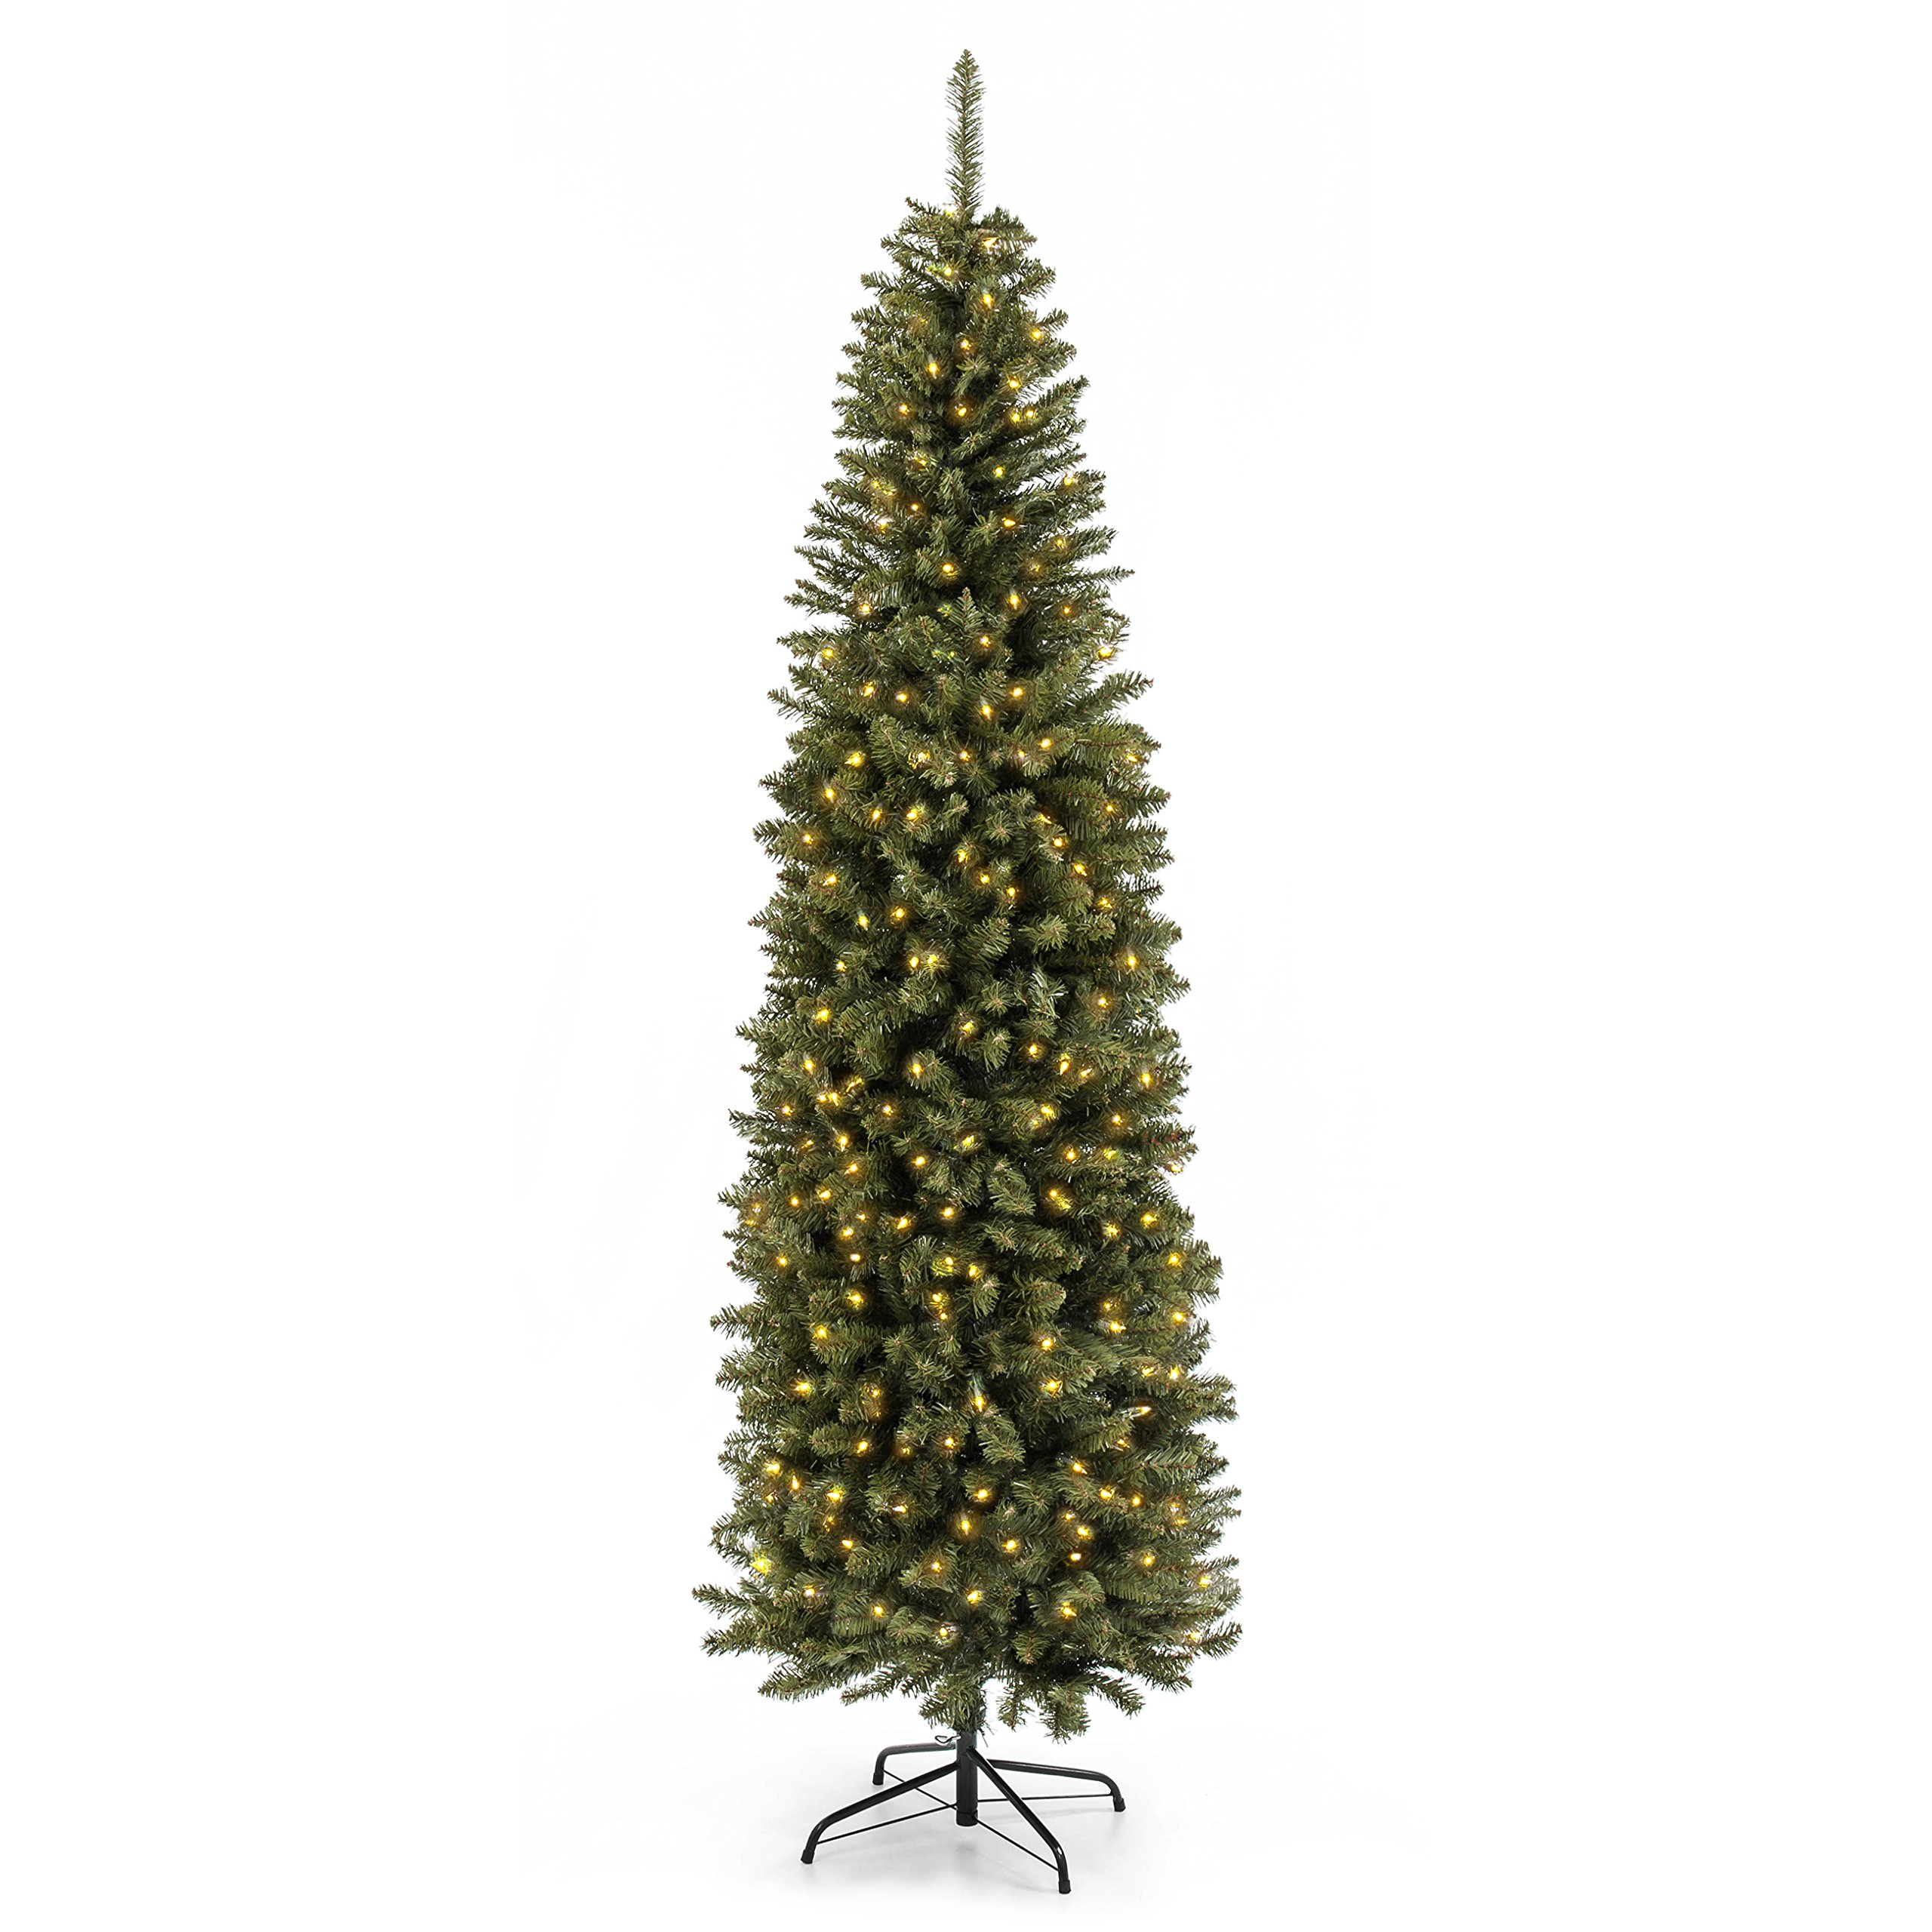 Best Choice Products 7.5FT Pre-Lit Premium Hinged Fir Pencil Christmas Tree w/350 UL 588 Certified Lights, Stand